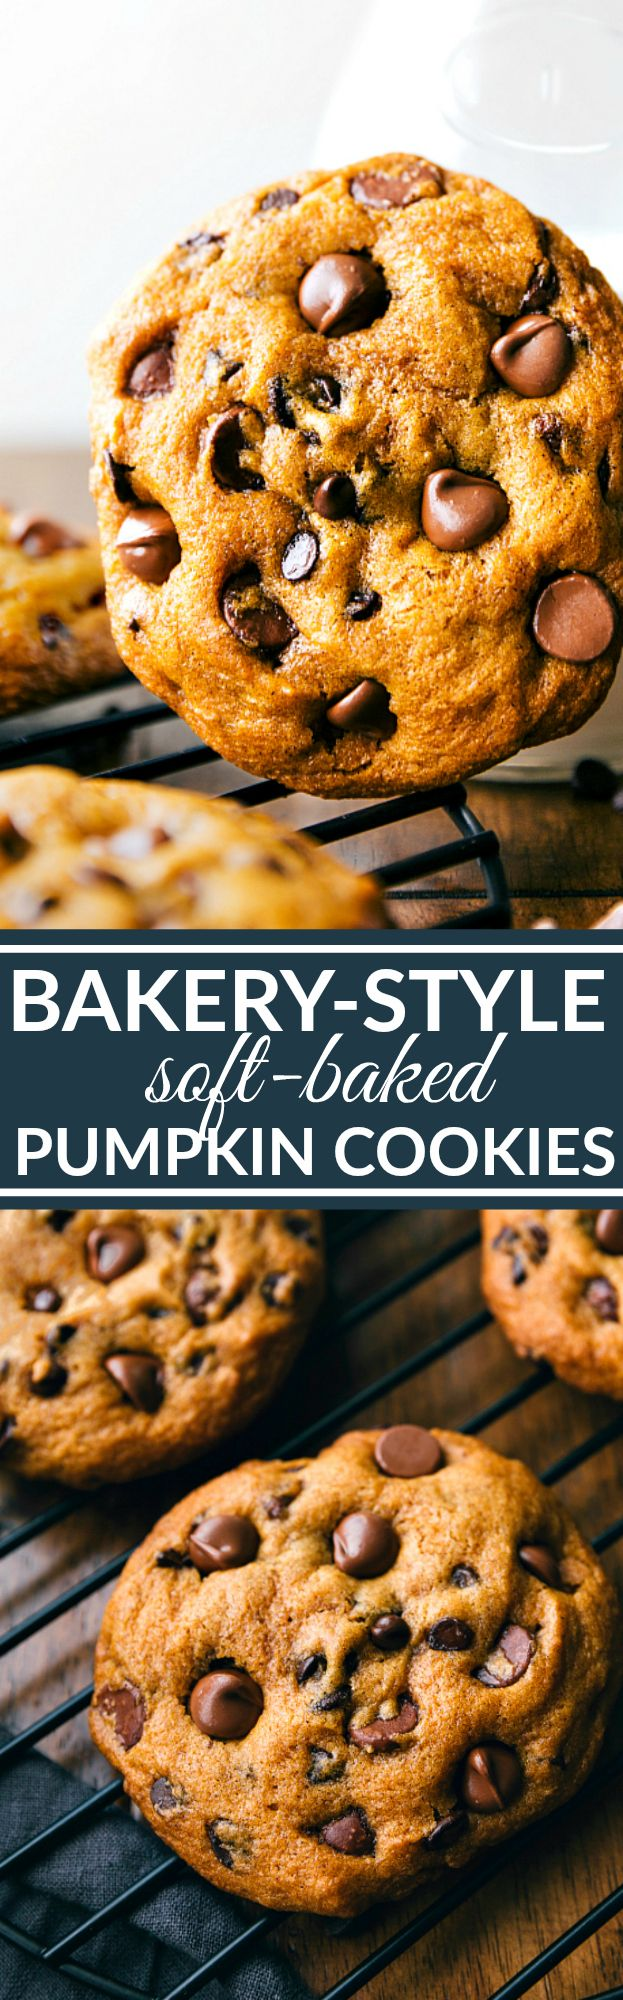 Super big, chewy and soft, muffin-top like pumpkin chocolate-chip cookies that taste like they are straight from a bakery!